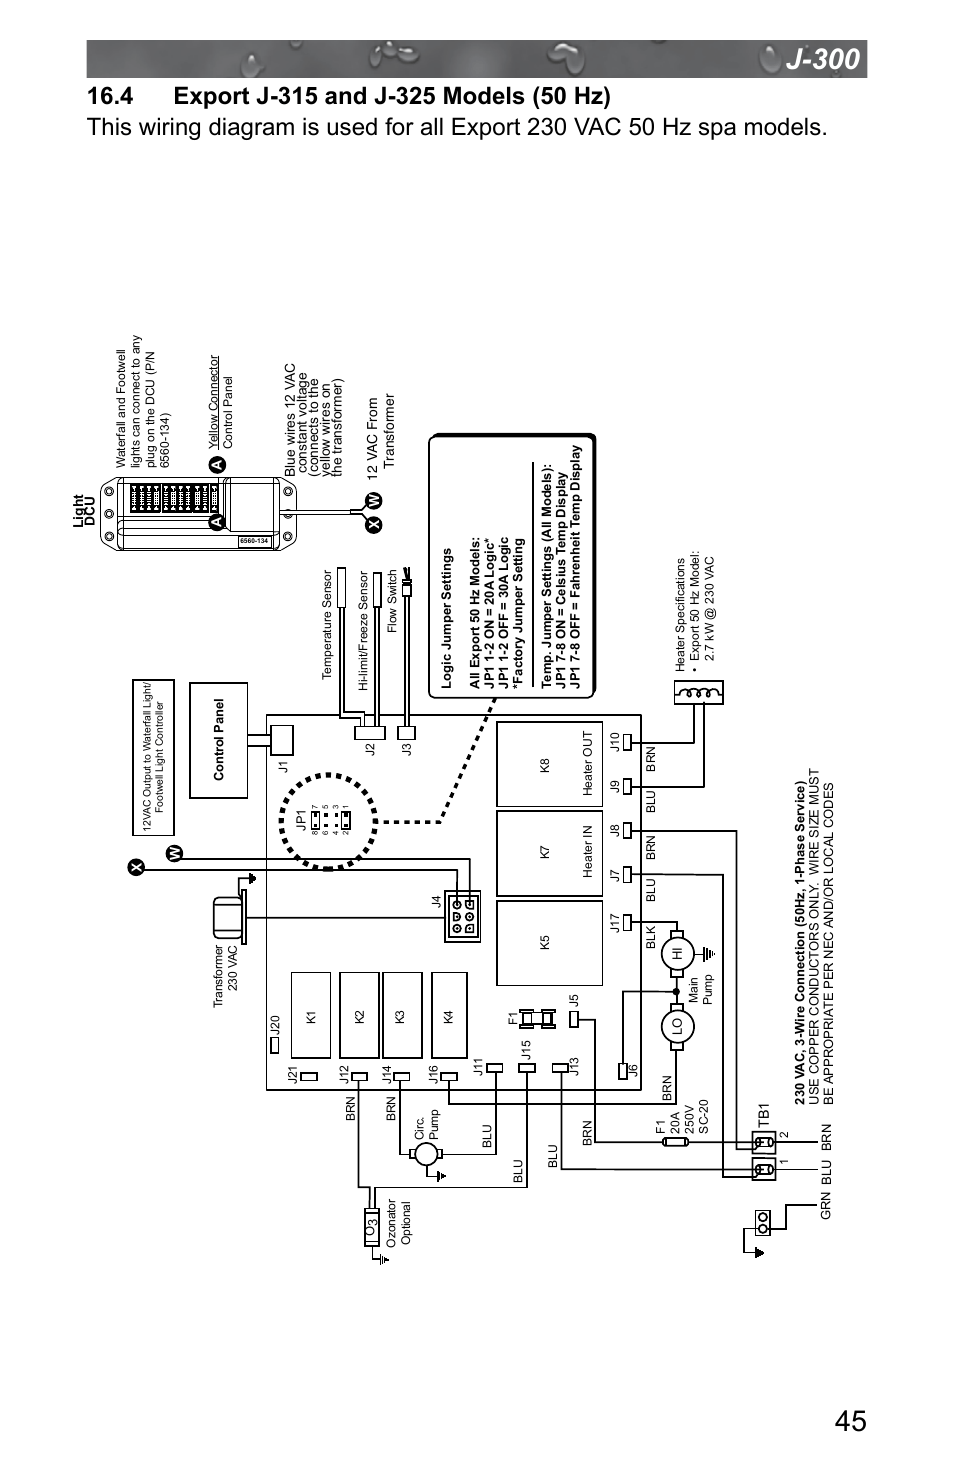 wiring diagram as used